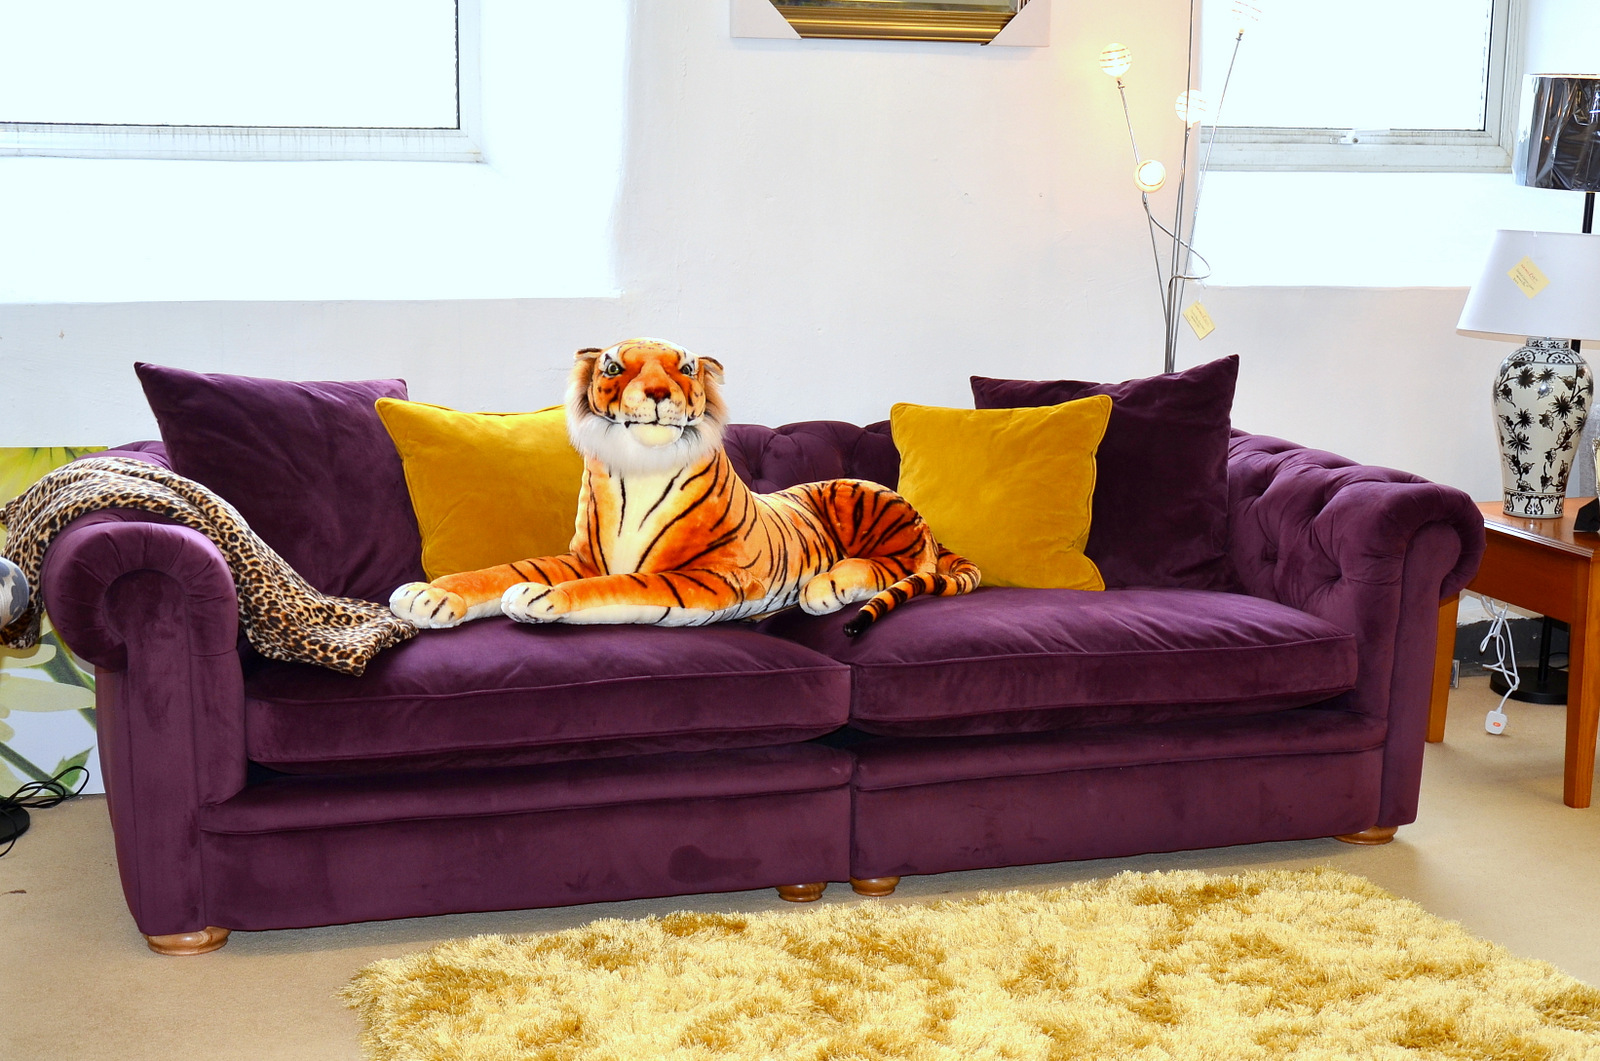 Picture of a tiger on an ex display sofa